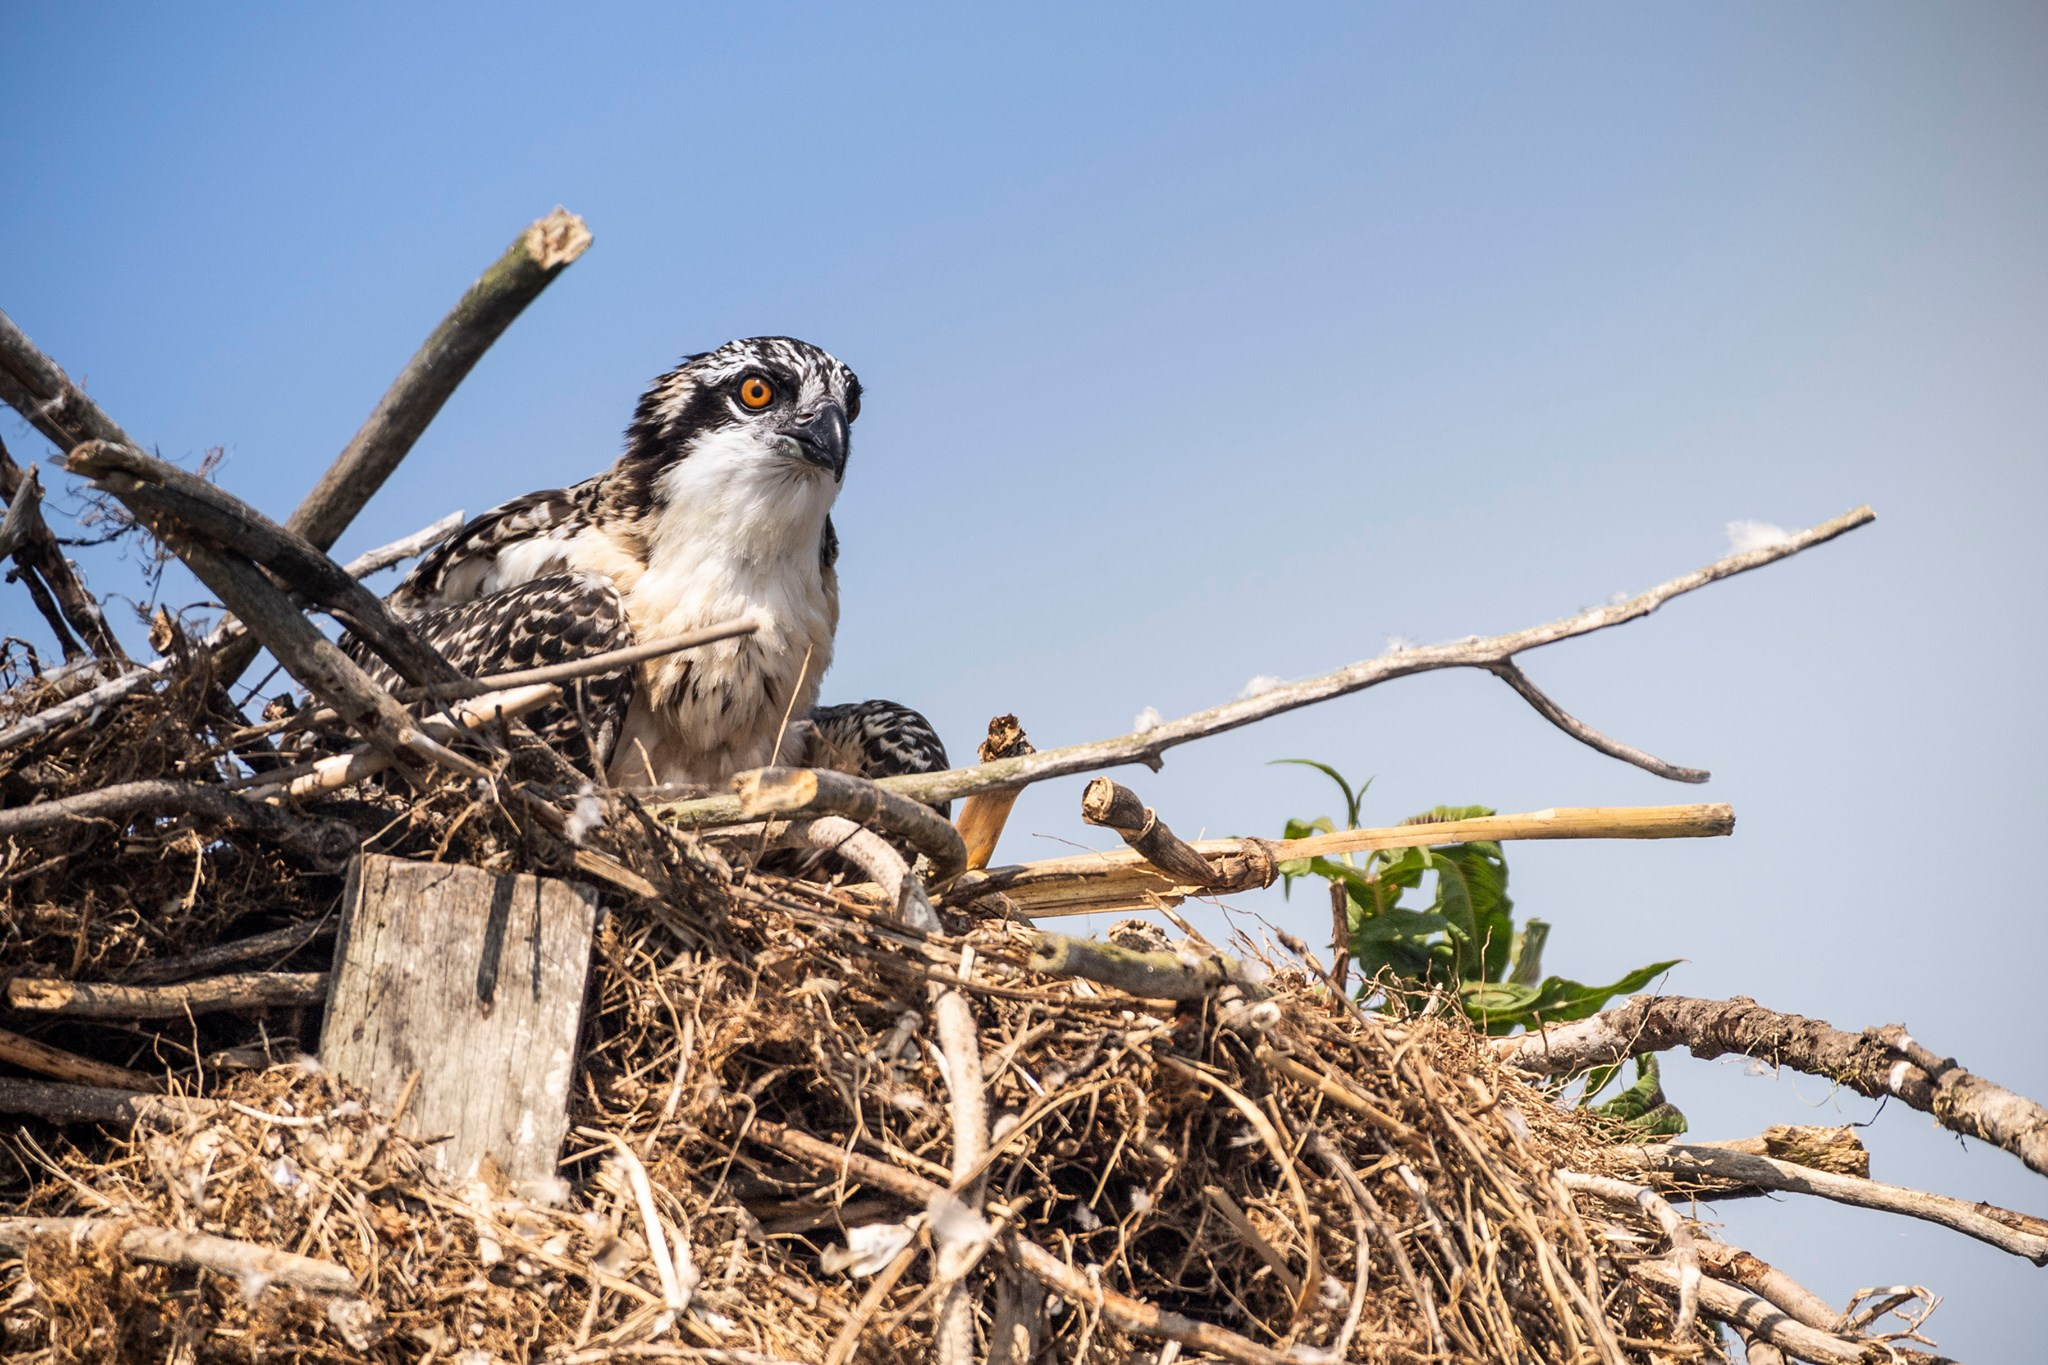 Osprey perched in nest